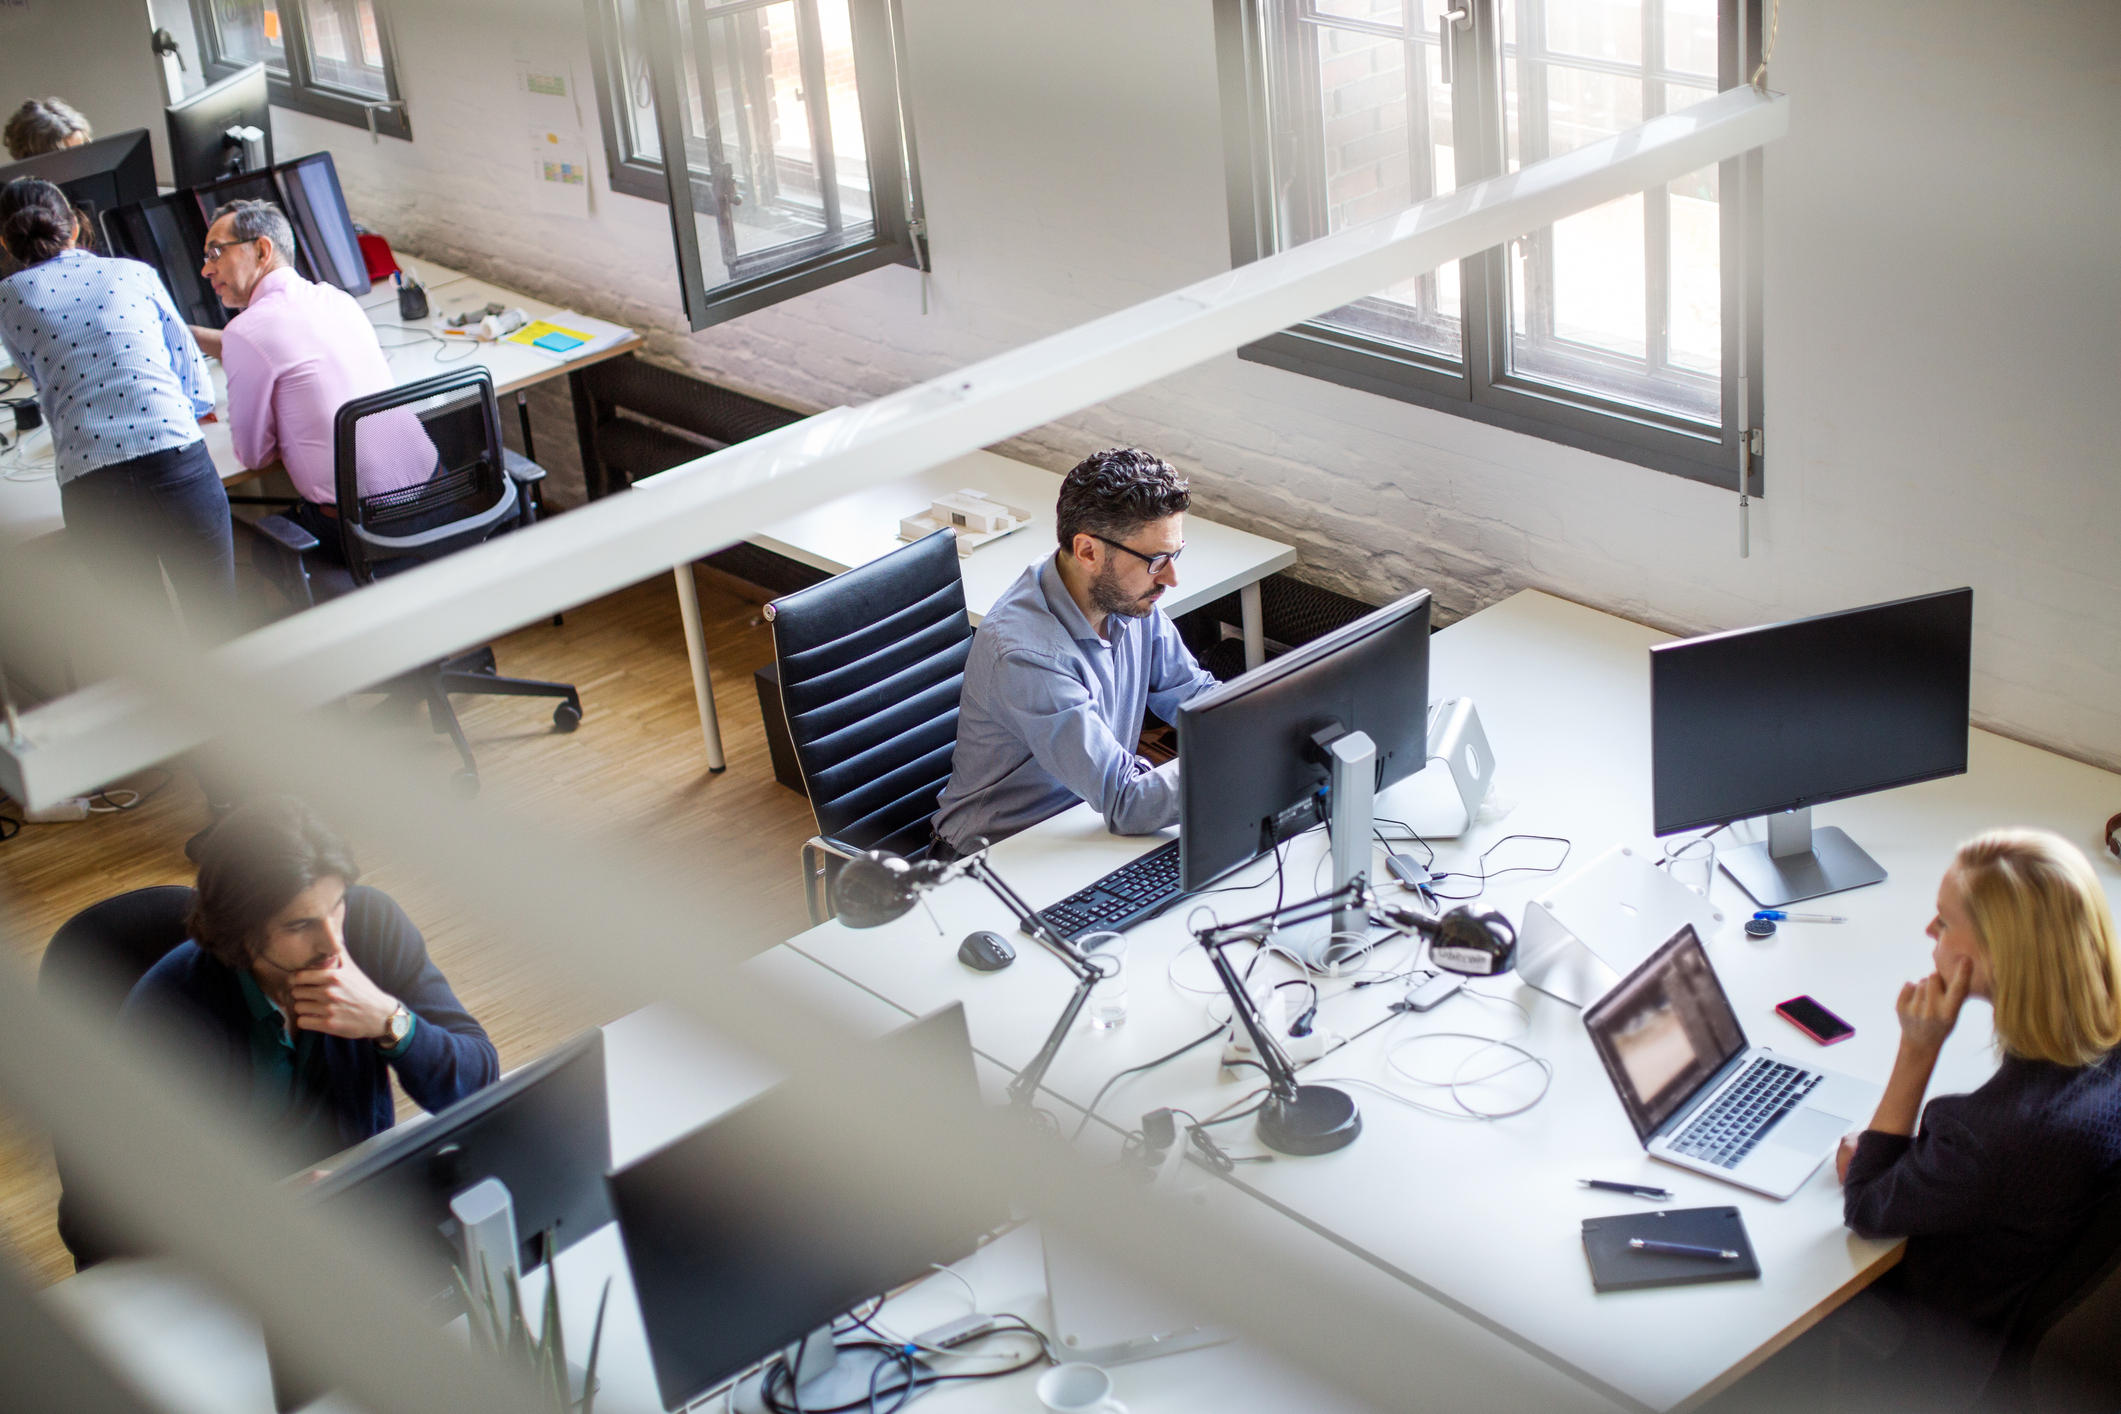 Programmers using computers at creative office